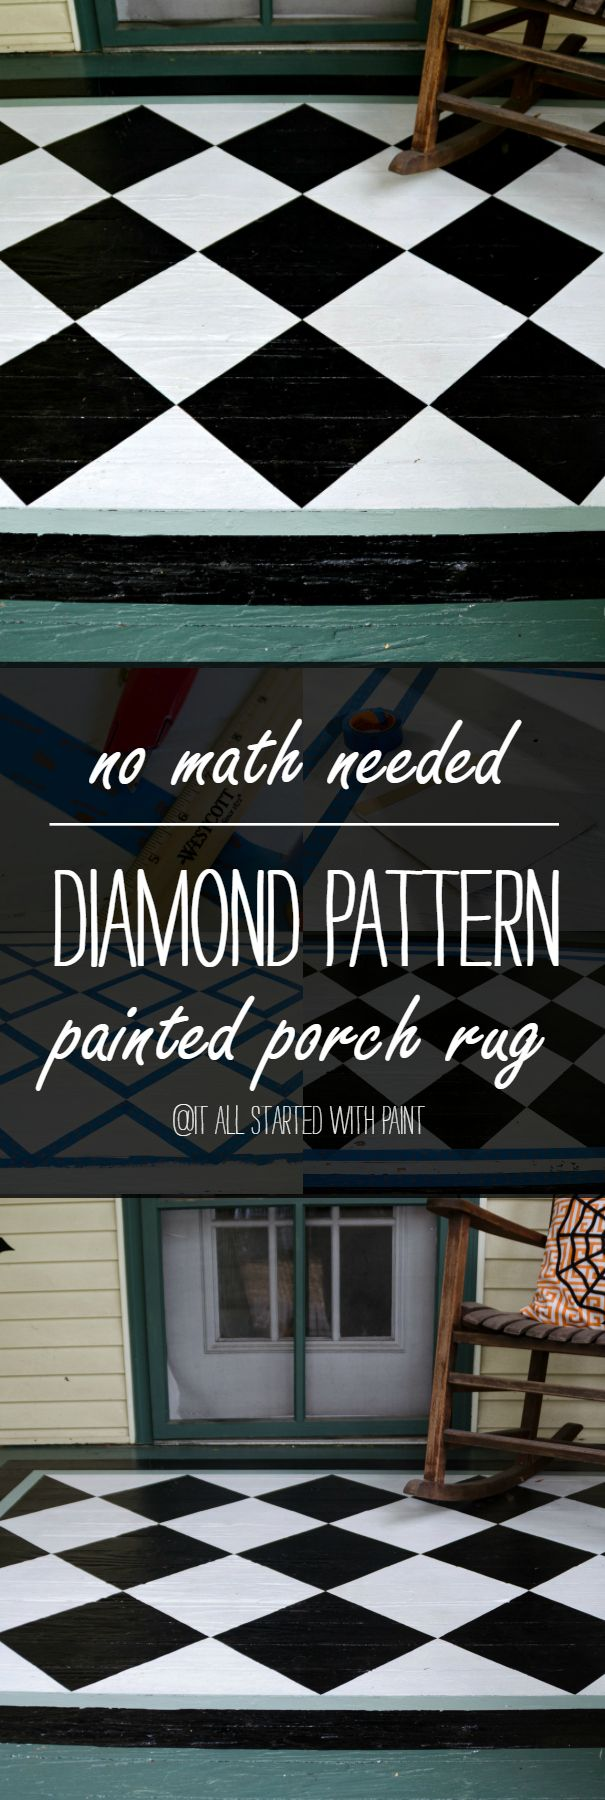 Painted Porch Rug - Diamond Pattern - Easiest Tutorial How To Paint with No Math Needed